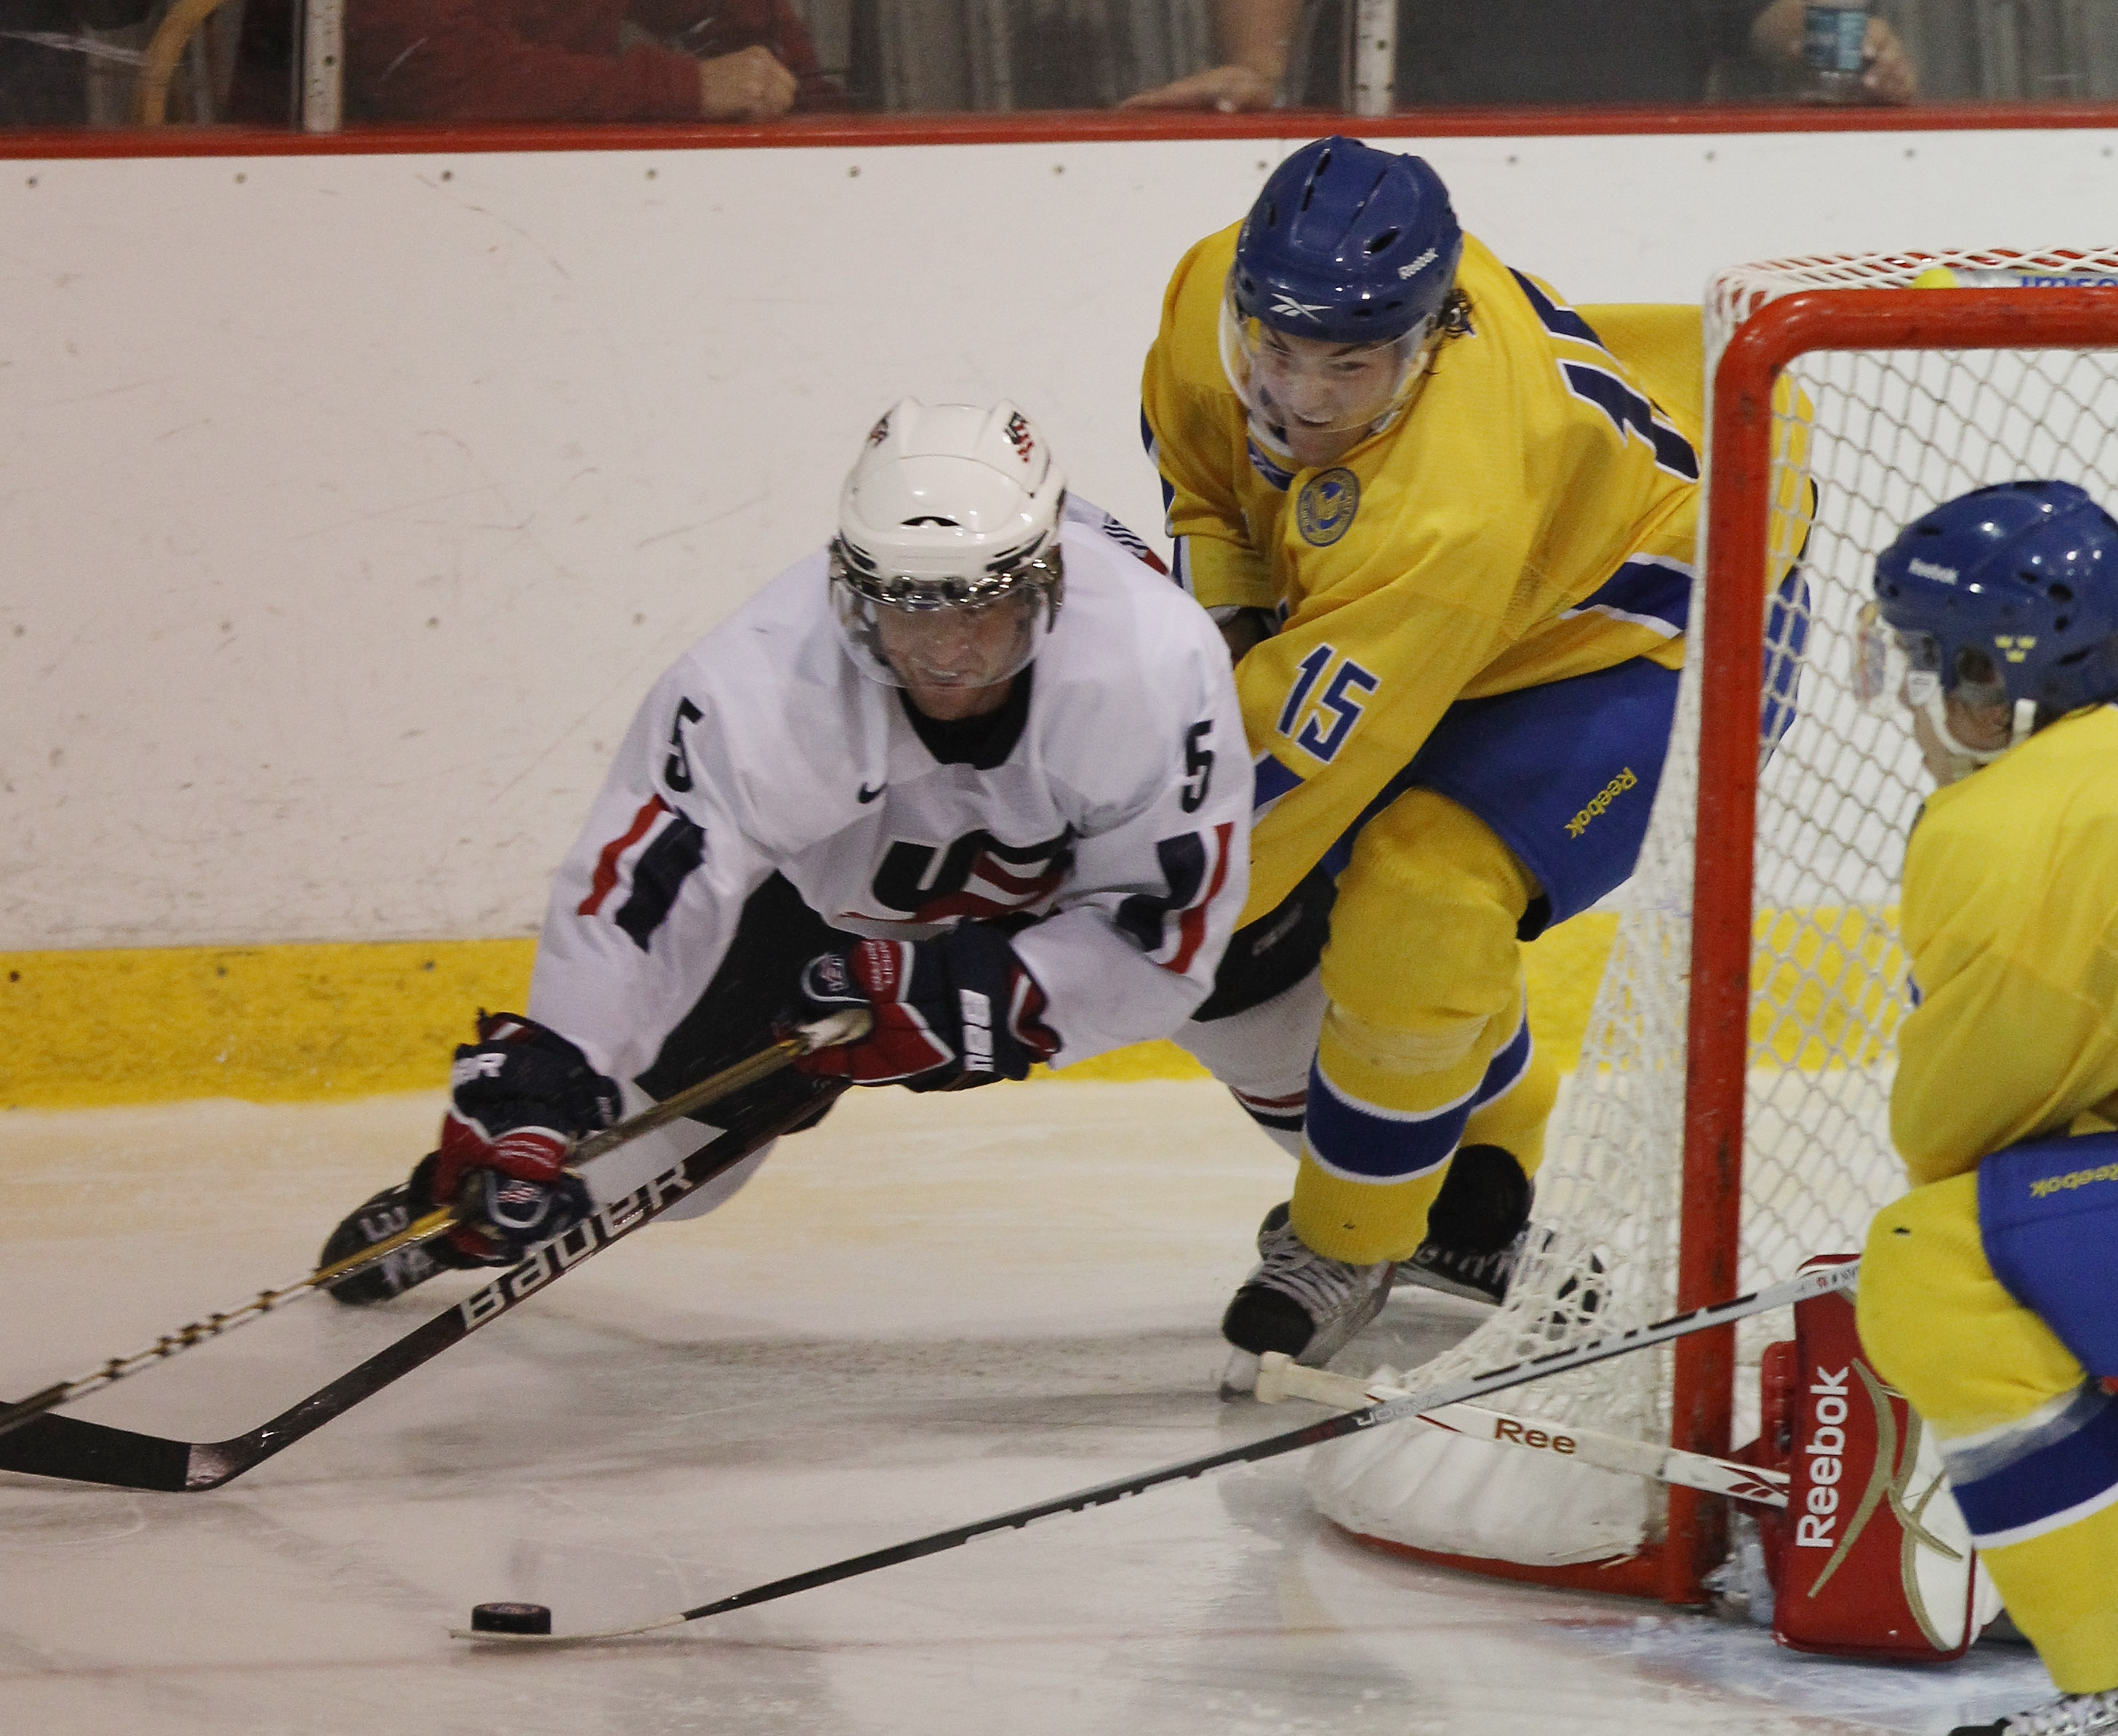 LAKE PLACID, NY - AUGUST 03: Simon Bertilsson #15  of Team Sweden trips up Kyle Palmieri #5 of Team USA at the USA Hockey National Evaluation Camp game on August 3, 2010 in Lake Placid, New York.  The USA defeated Sweden 6-3. (Photo by Bruce Bennett/Getty